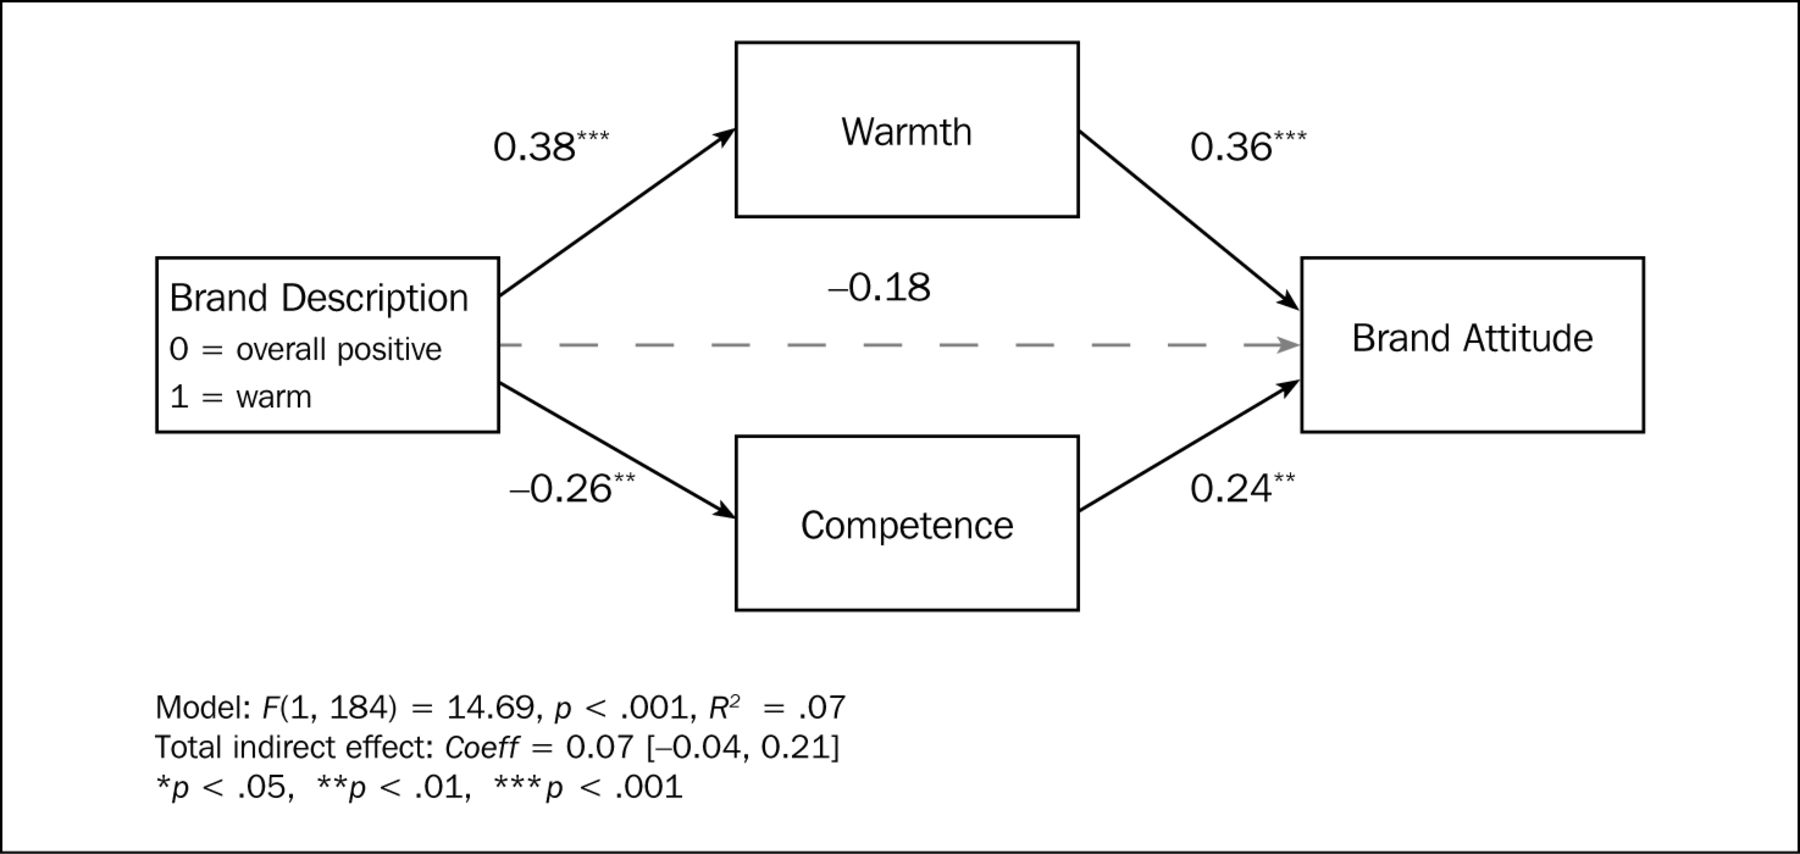 The Risk of Omitting Warmth Or Competence Information in Ads